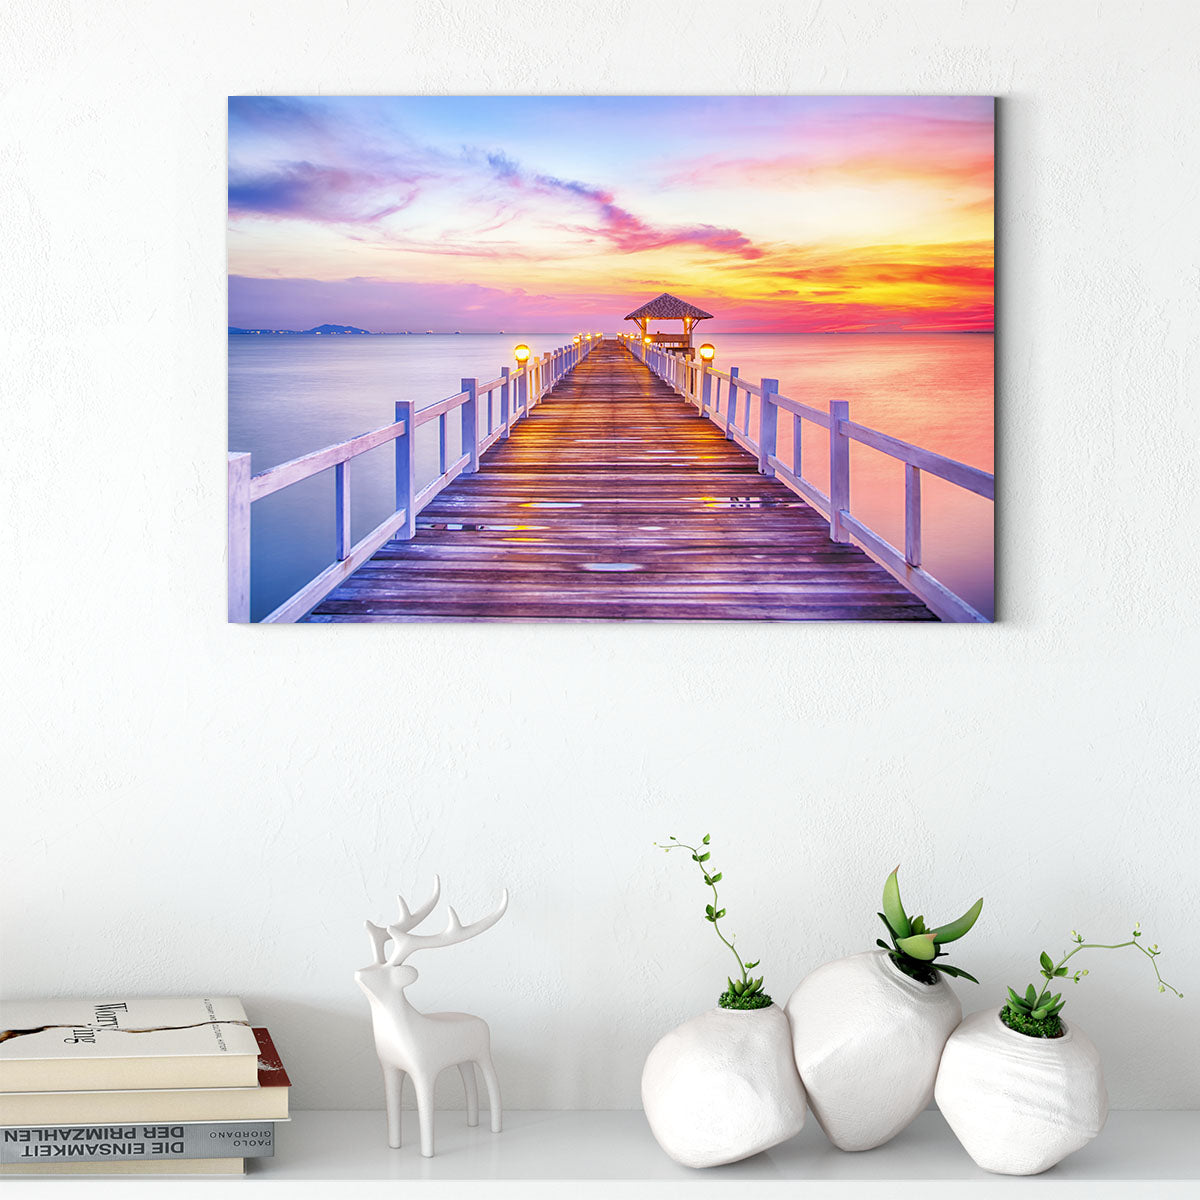 The multi-colored sky at seaside pier Decorating Print 297